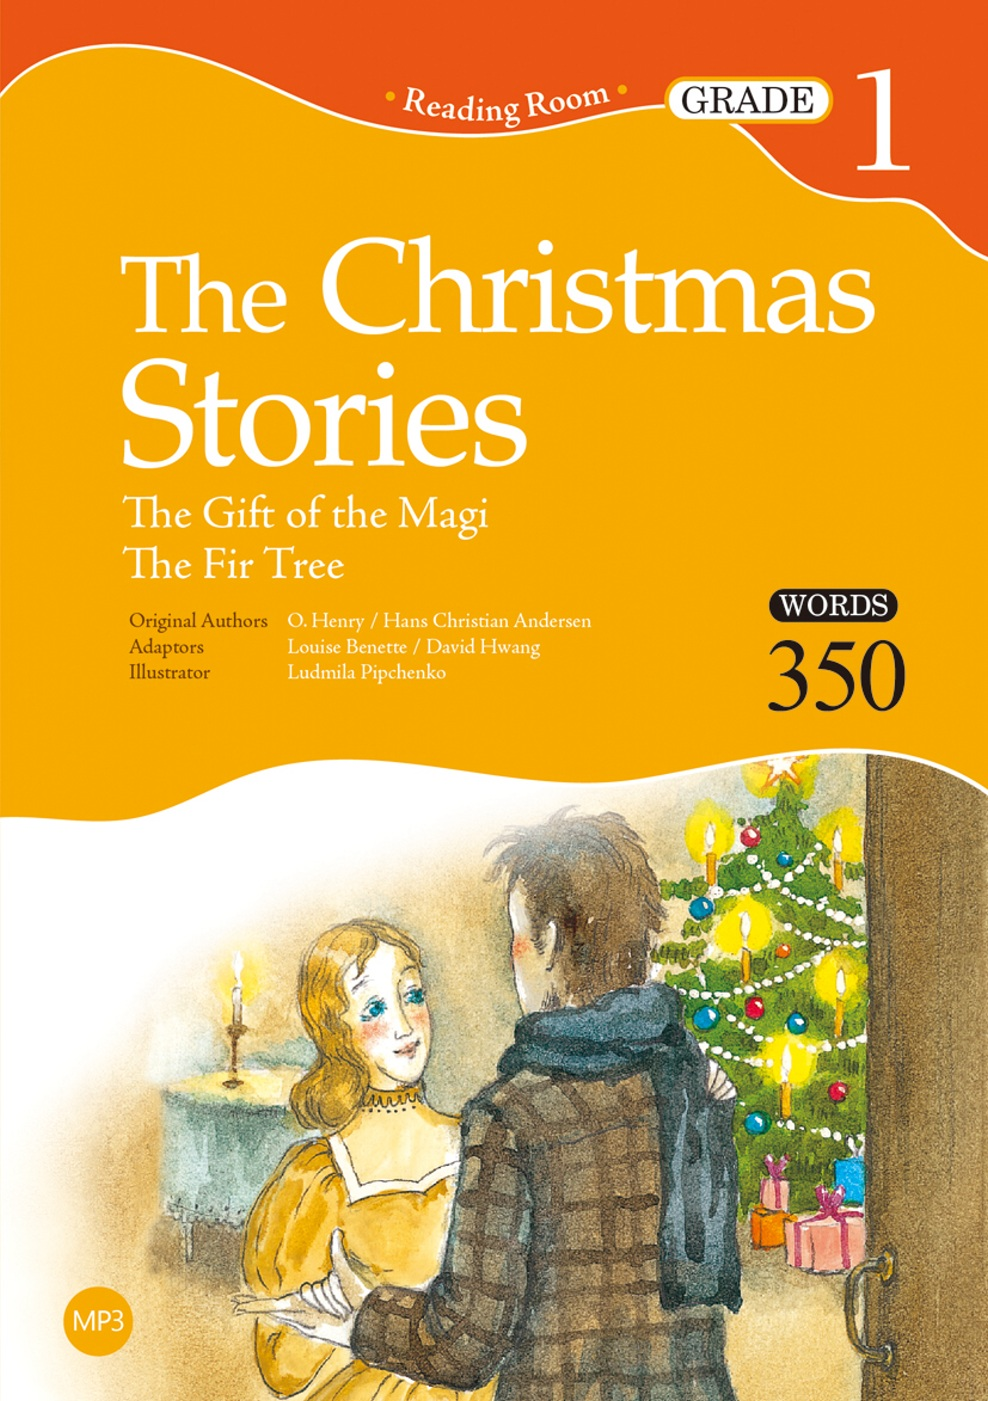 The Christmas Stories:The Gift of the Magi, The Fir Tree【Grade 1】(25K經典文學改寫讀本+1MP3)